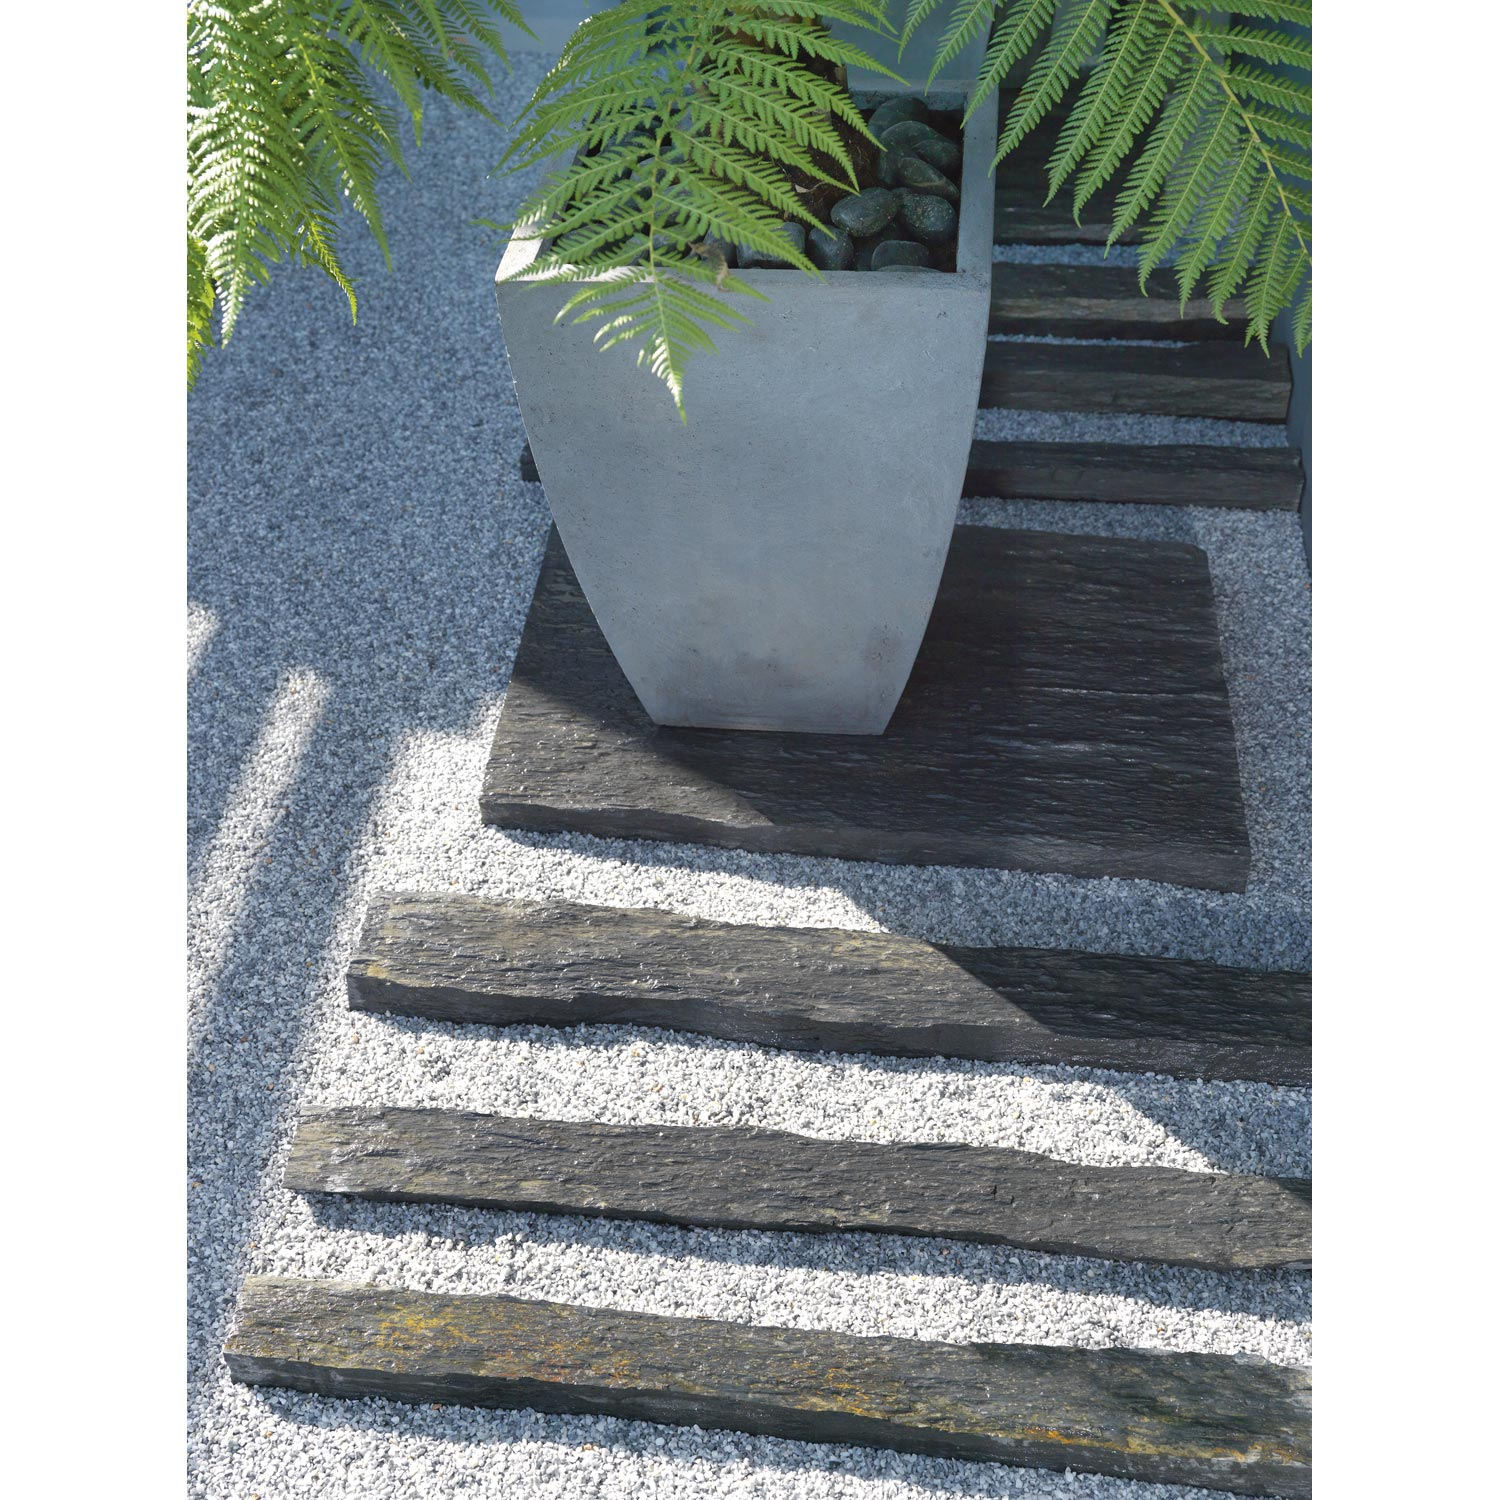 Deco Bordure Jardin Trendy Deco Pierre Jardin With Deco Bordure  # Bordure De Jardin Grise